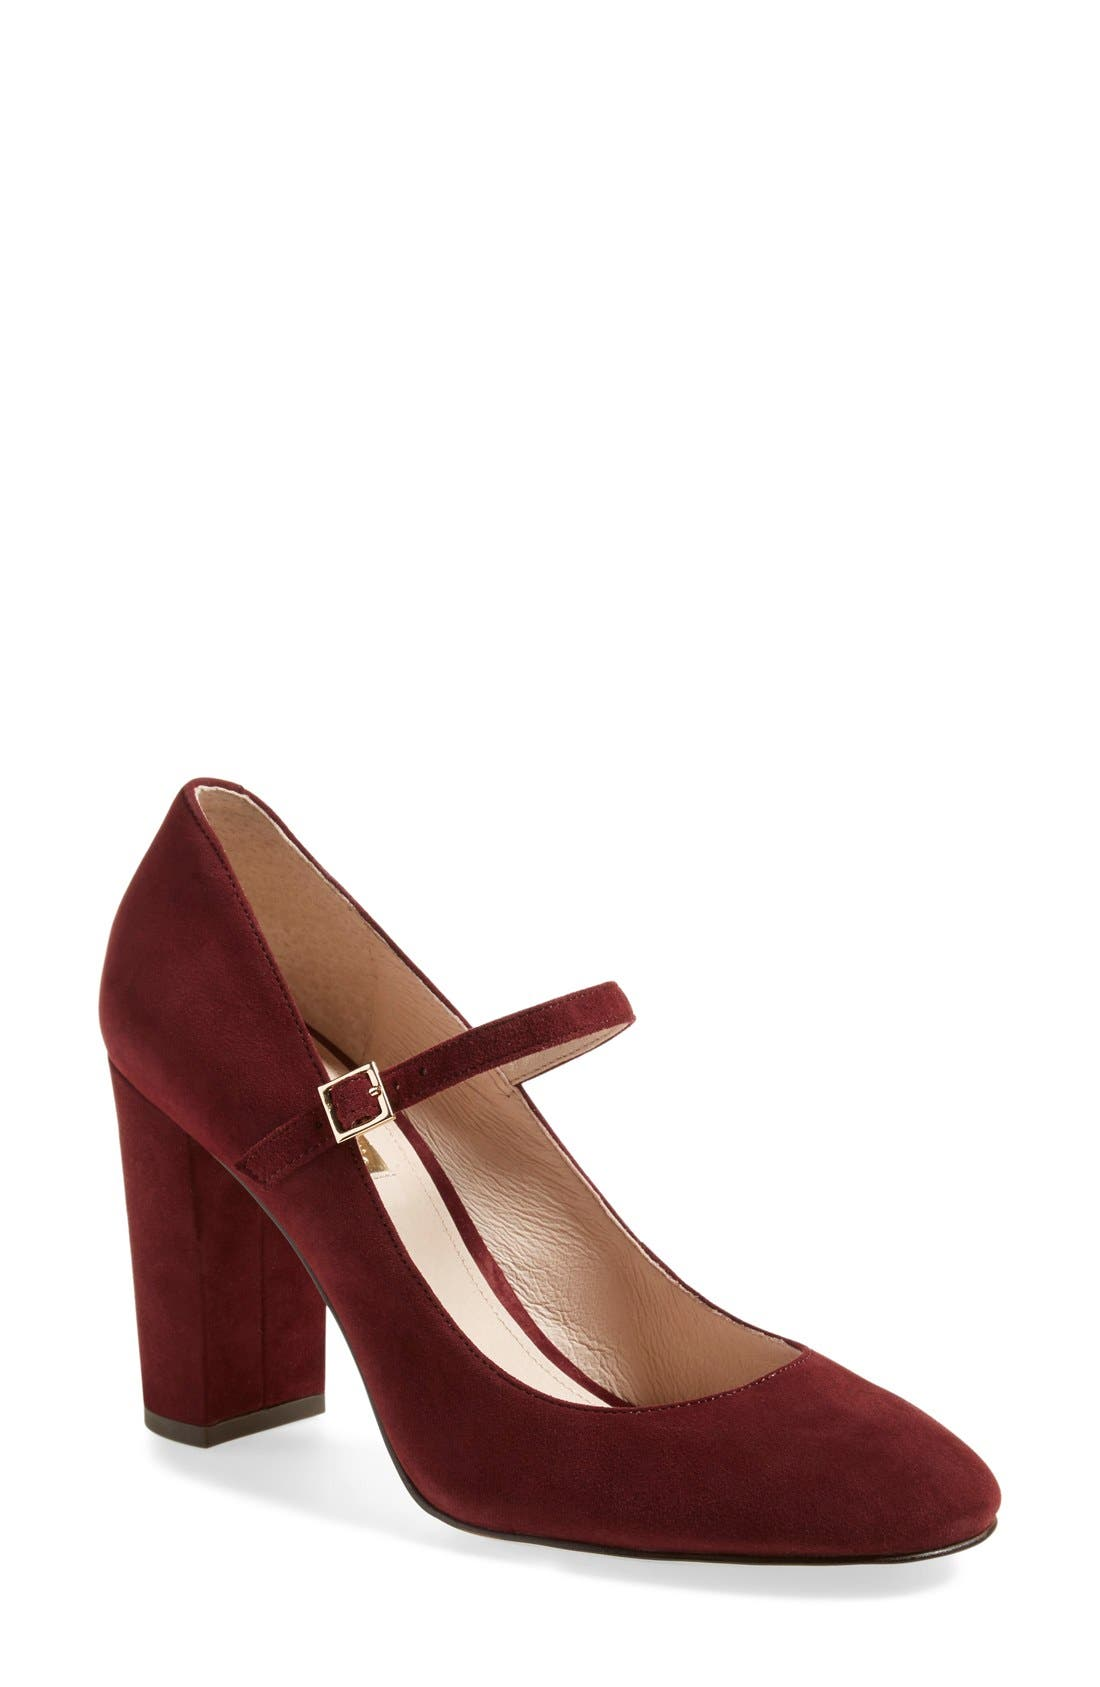 Alternate Image 1 Selected - Louise et Cie 'Jayde' Mary Jane Block Heel Pump (Women) (Nordstrom Exclusive)